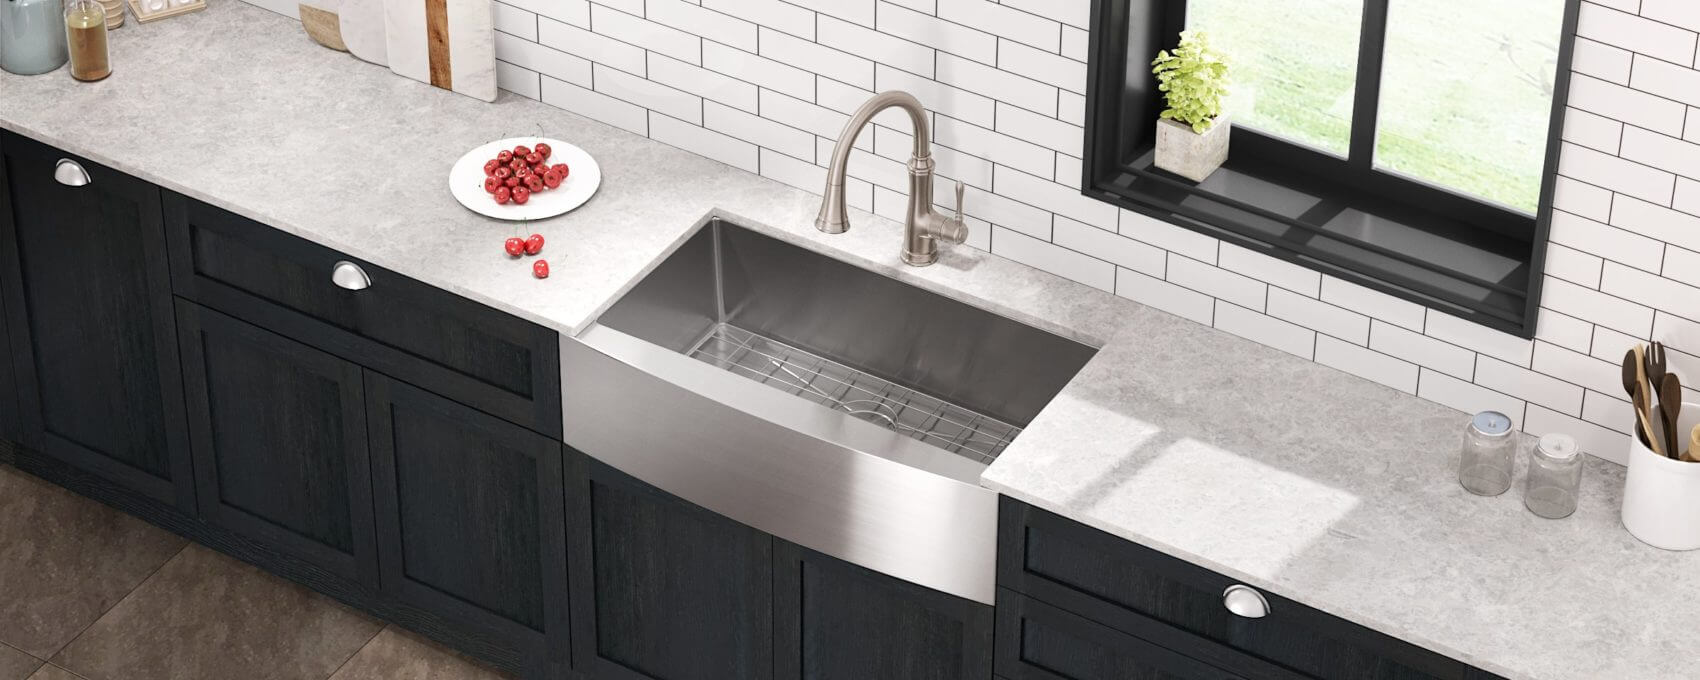 27 inch kitchen sink product allora usa